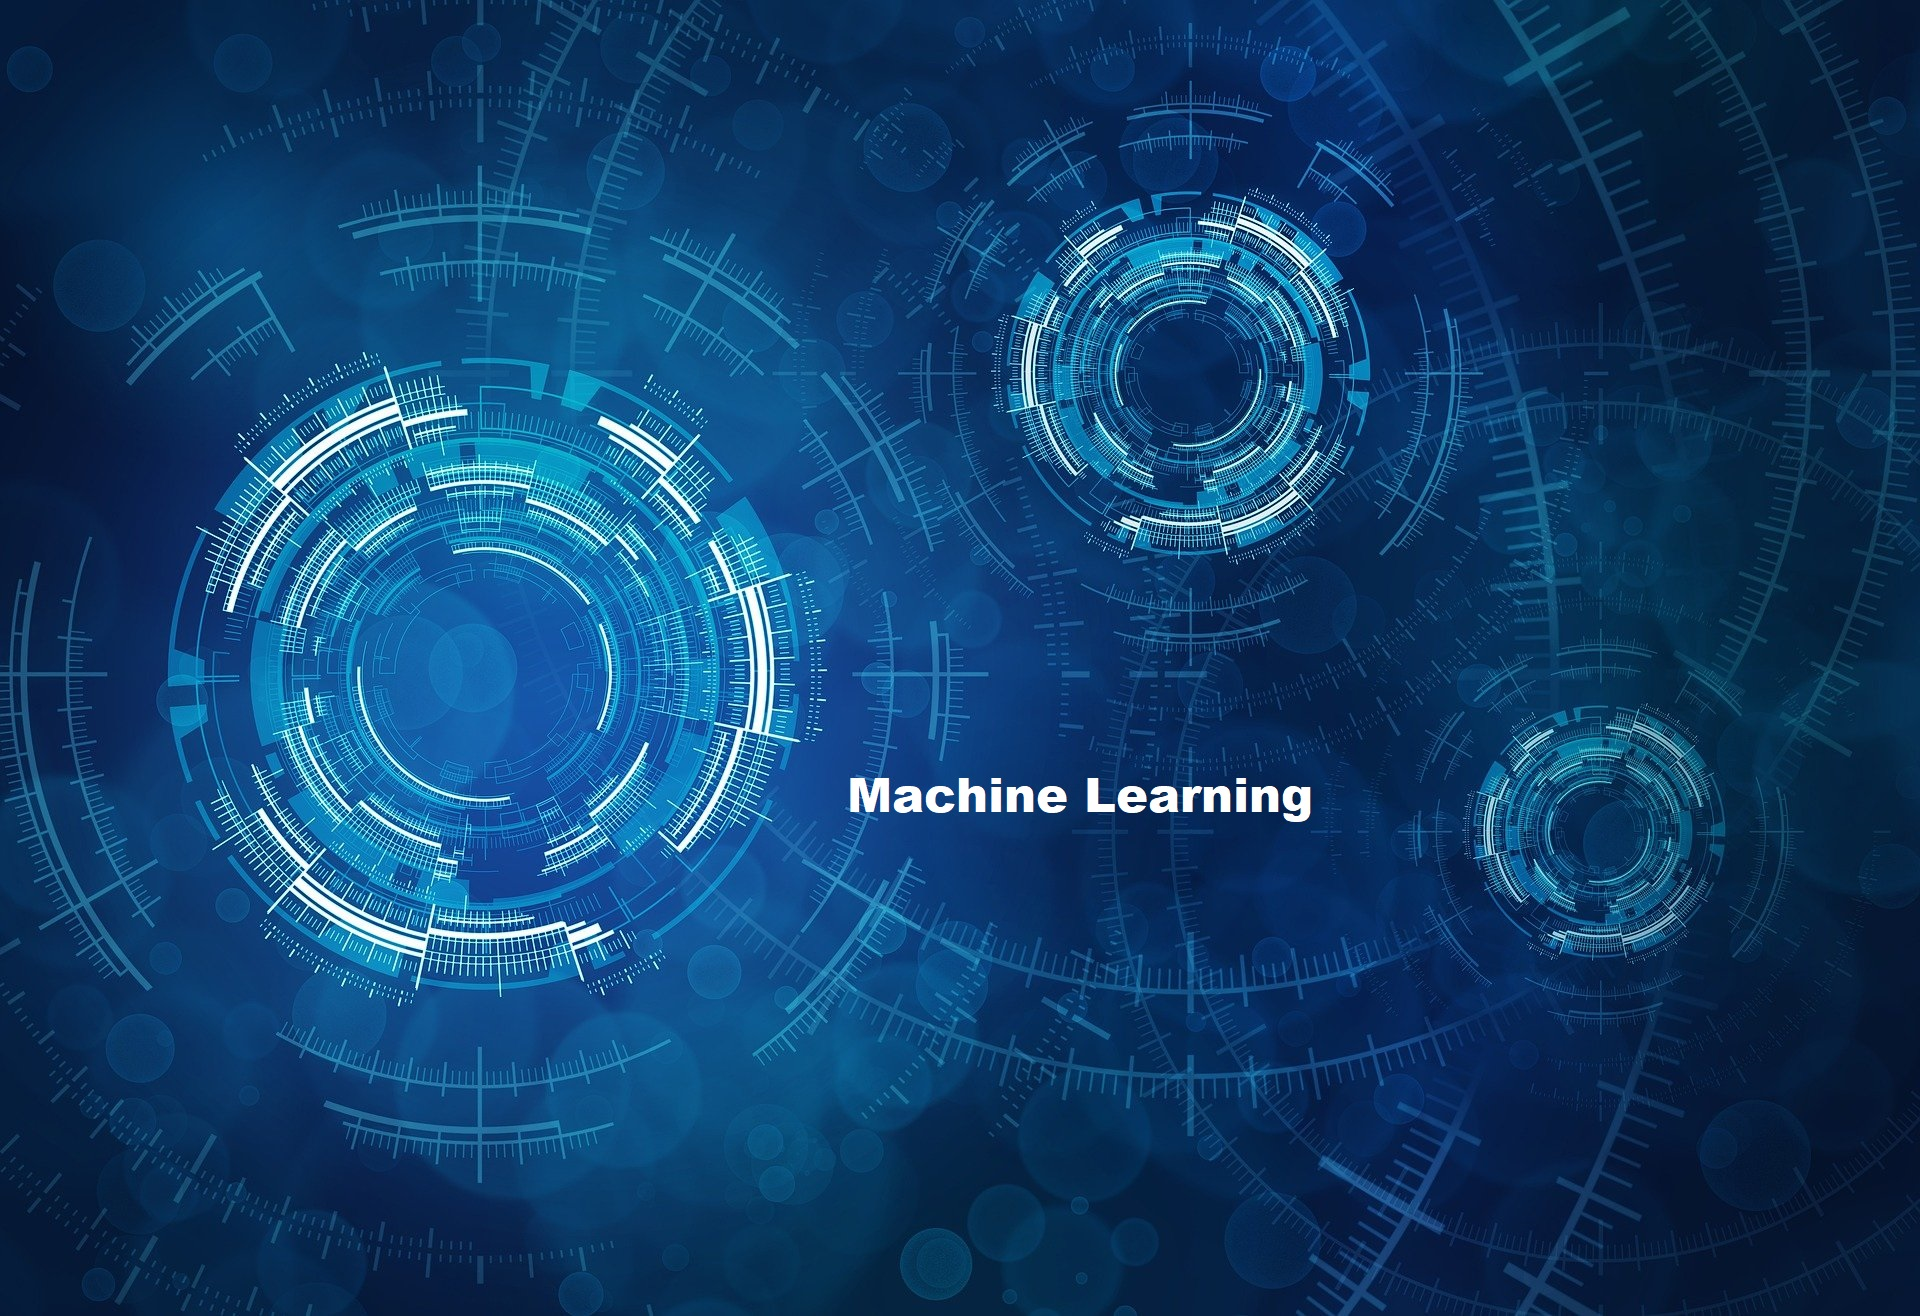 types of machine learning, need of machine learning, machine learning tutorial, how to learn machine learning